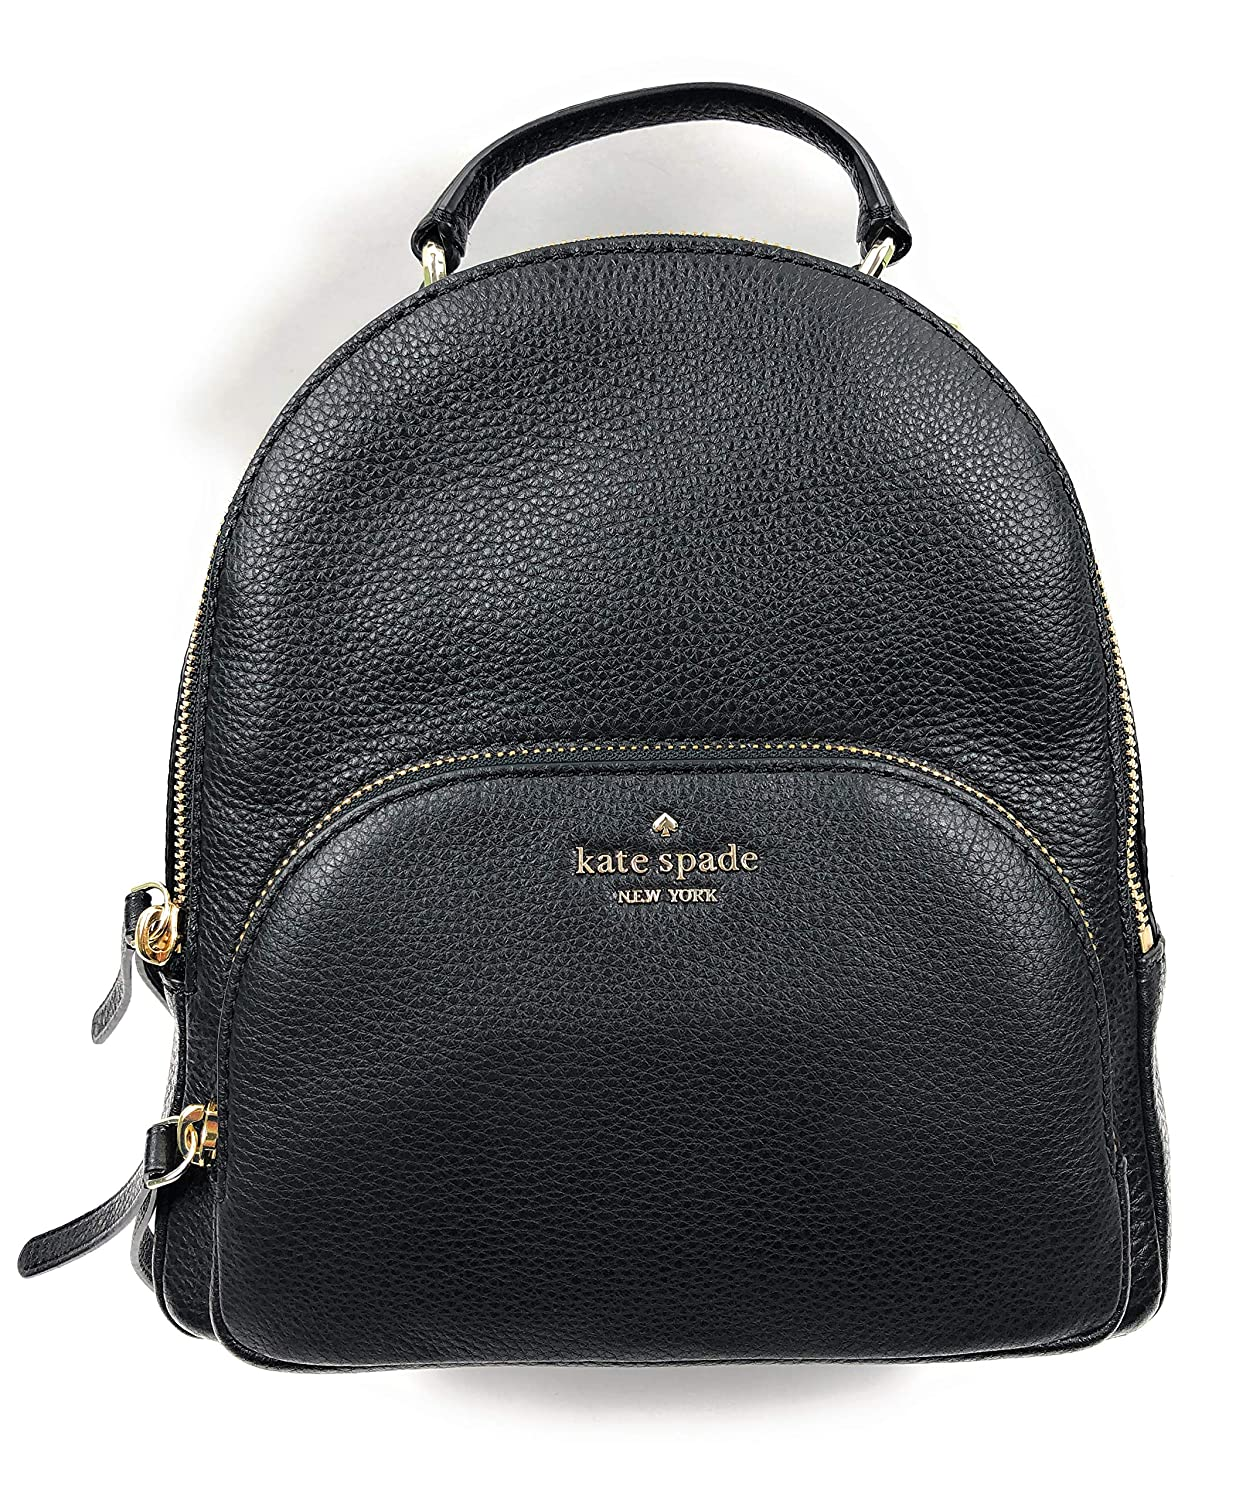 search for newest sells uk store Kate Spade New York Jackson Medium Backpack Pebbled Leather Black